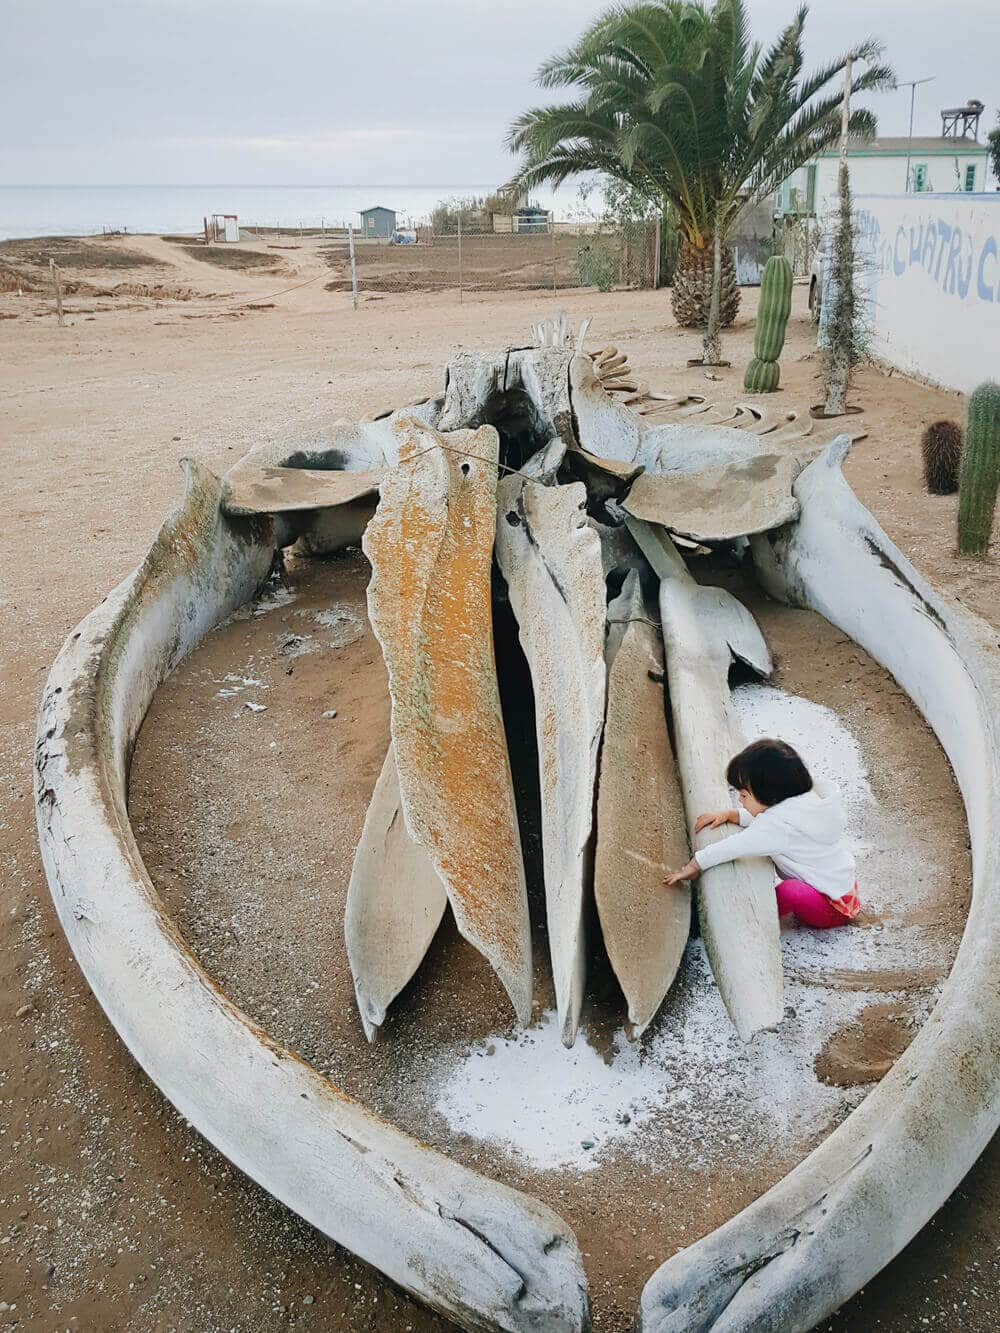 Playing on a whale skeleton